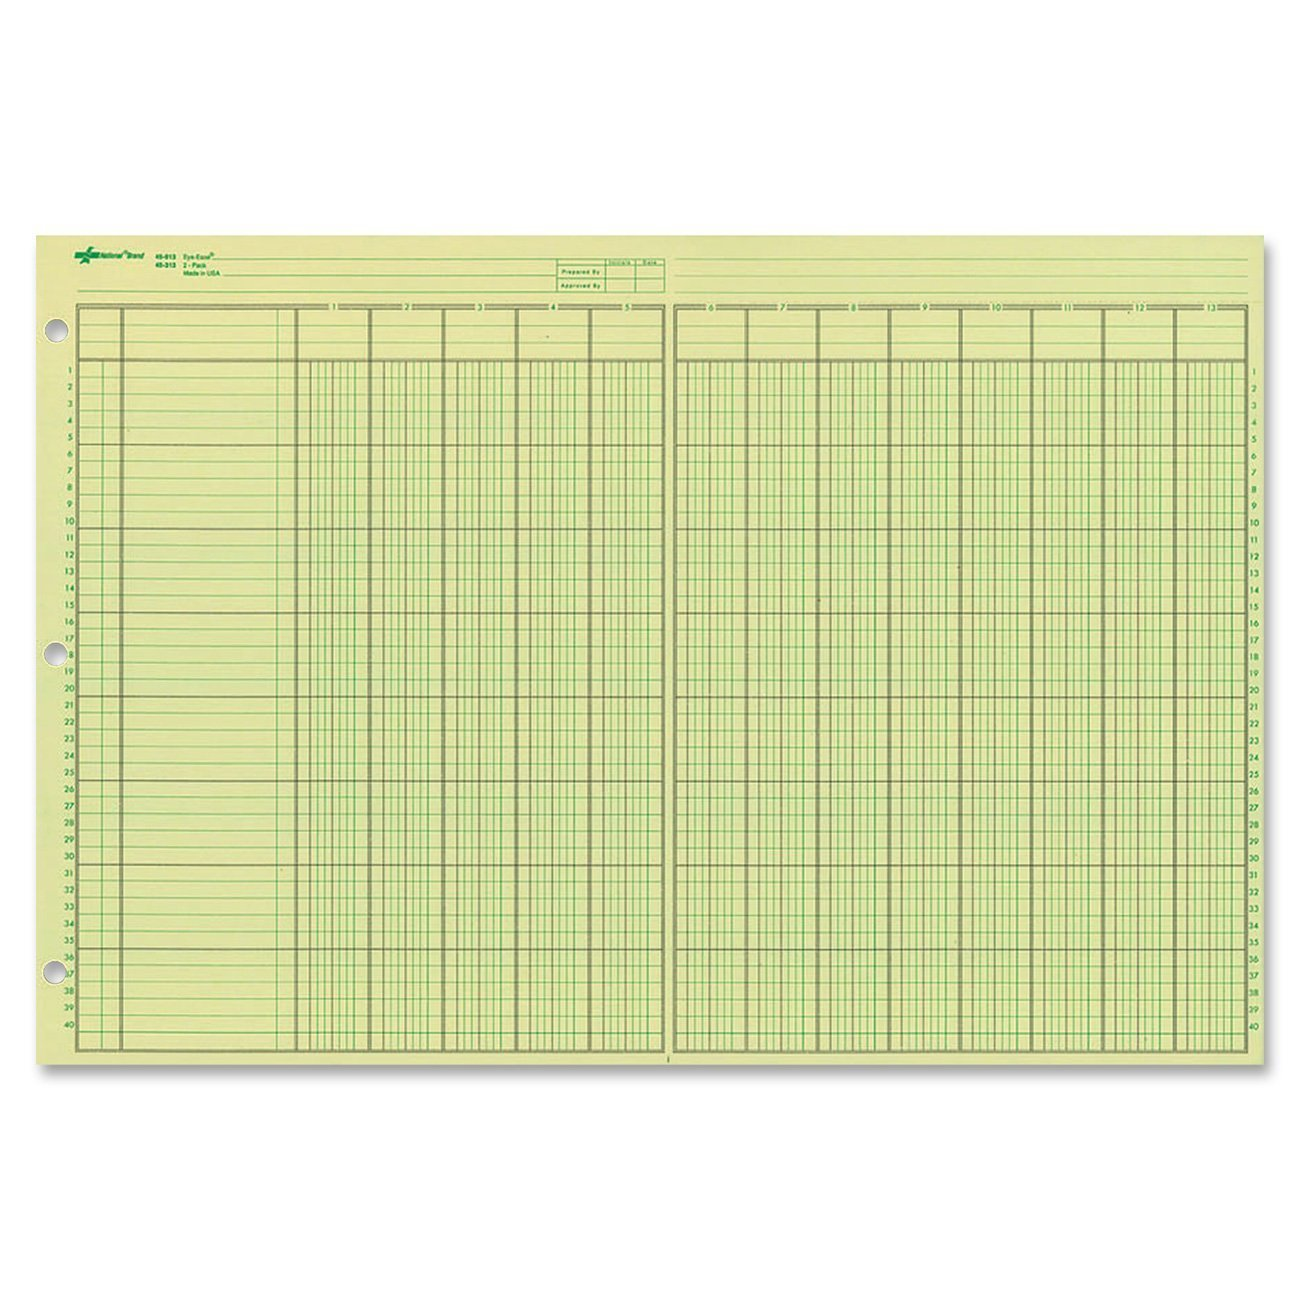 National Analysis Pad, 13 Columns, Green Paper, 11 x 16.375'', 50 Sheets, Sold as 3 Pack (45613) by Rediform